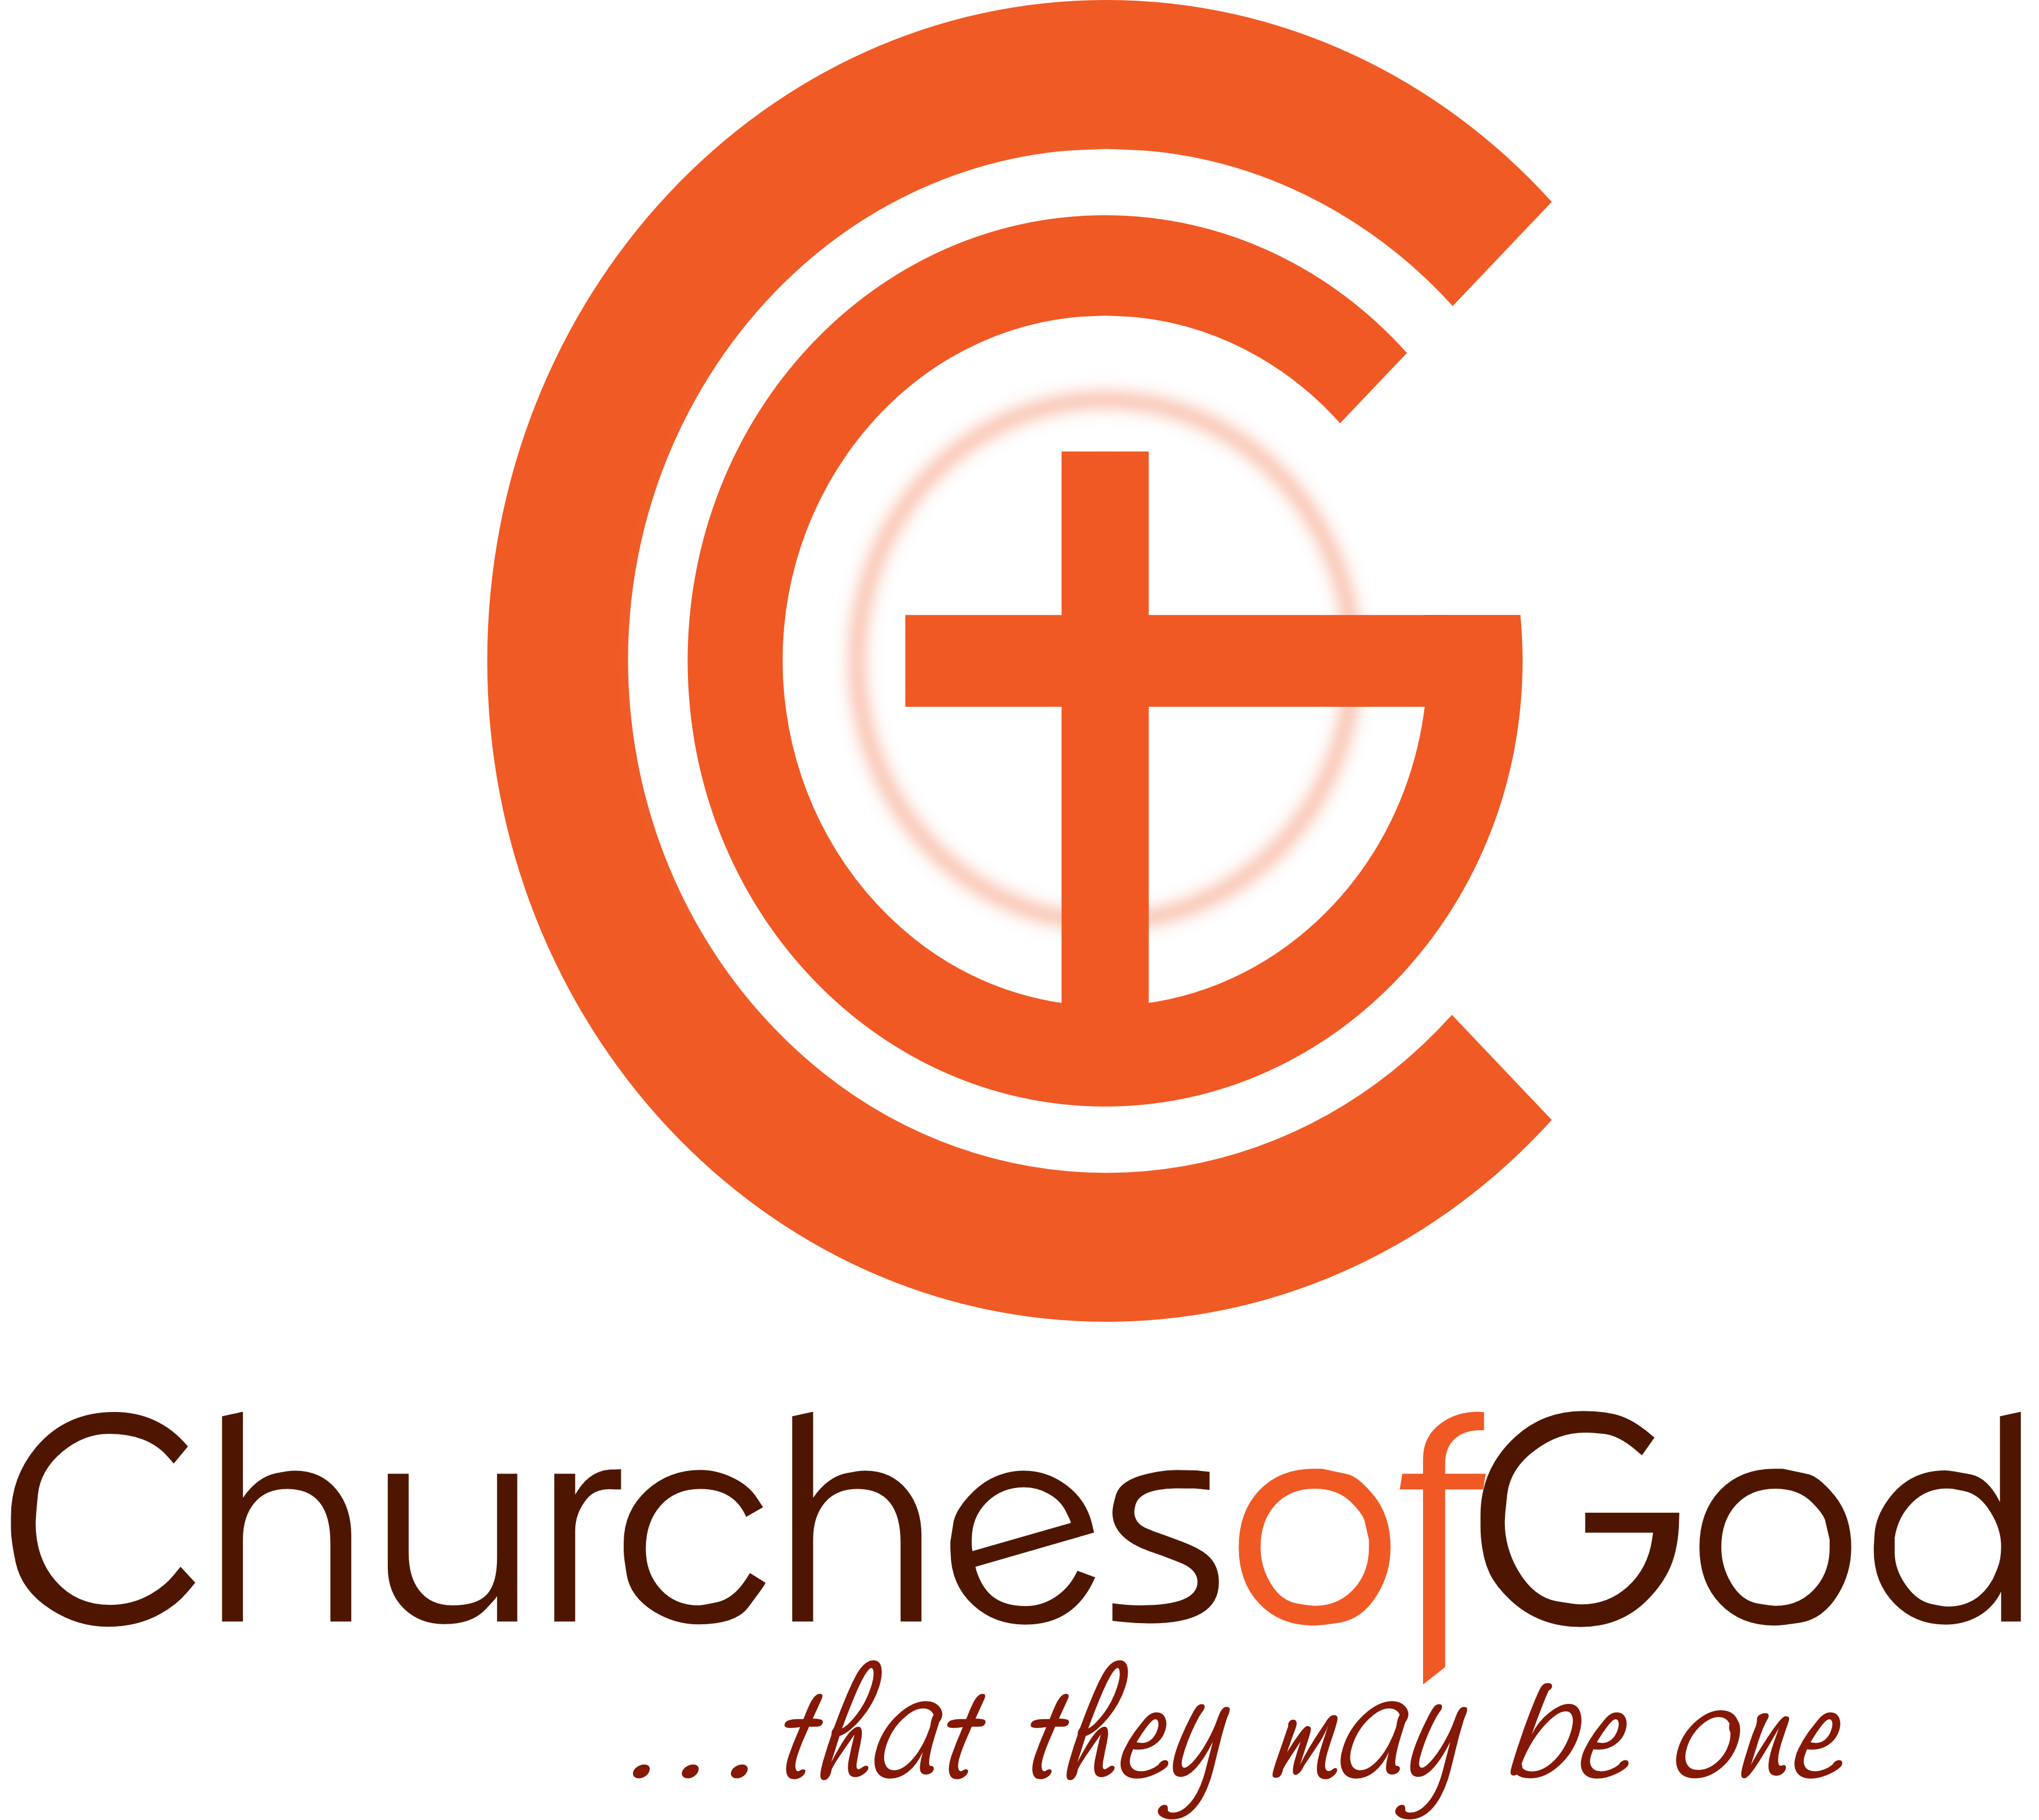 Church logos png. Churches of god imagery